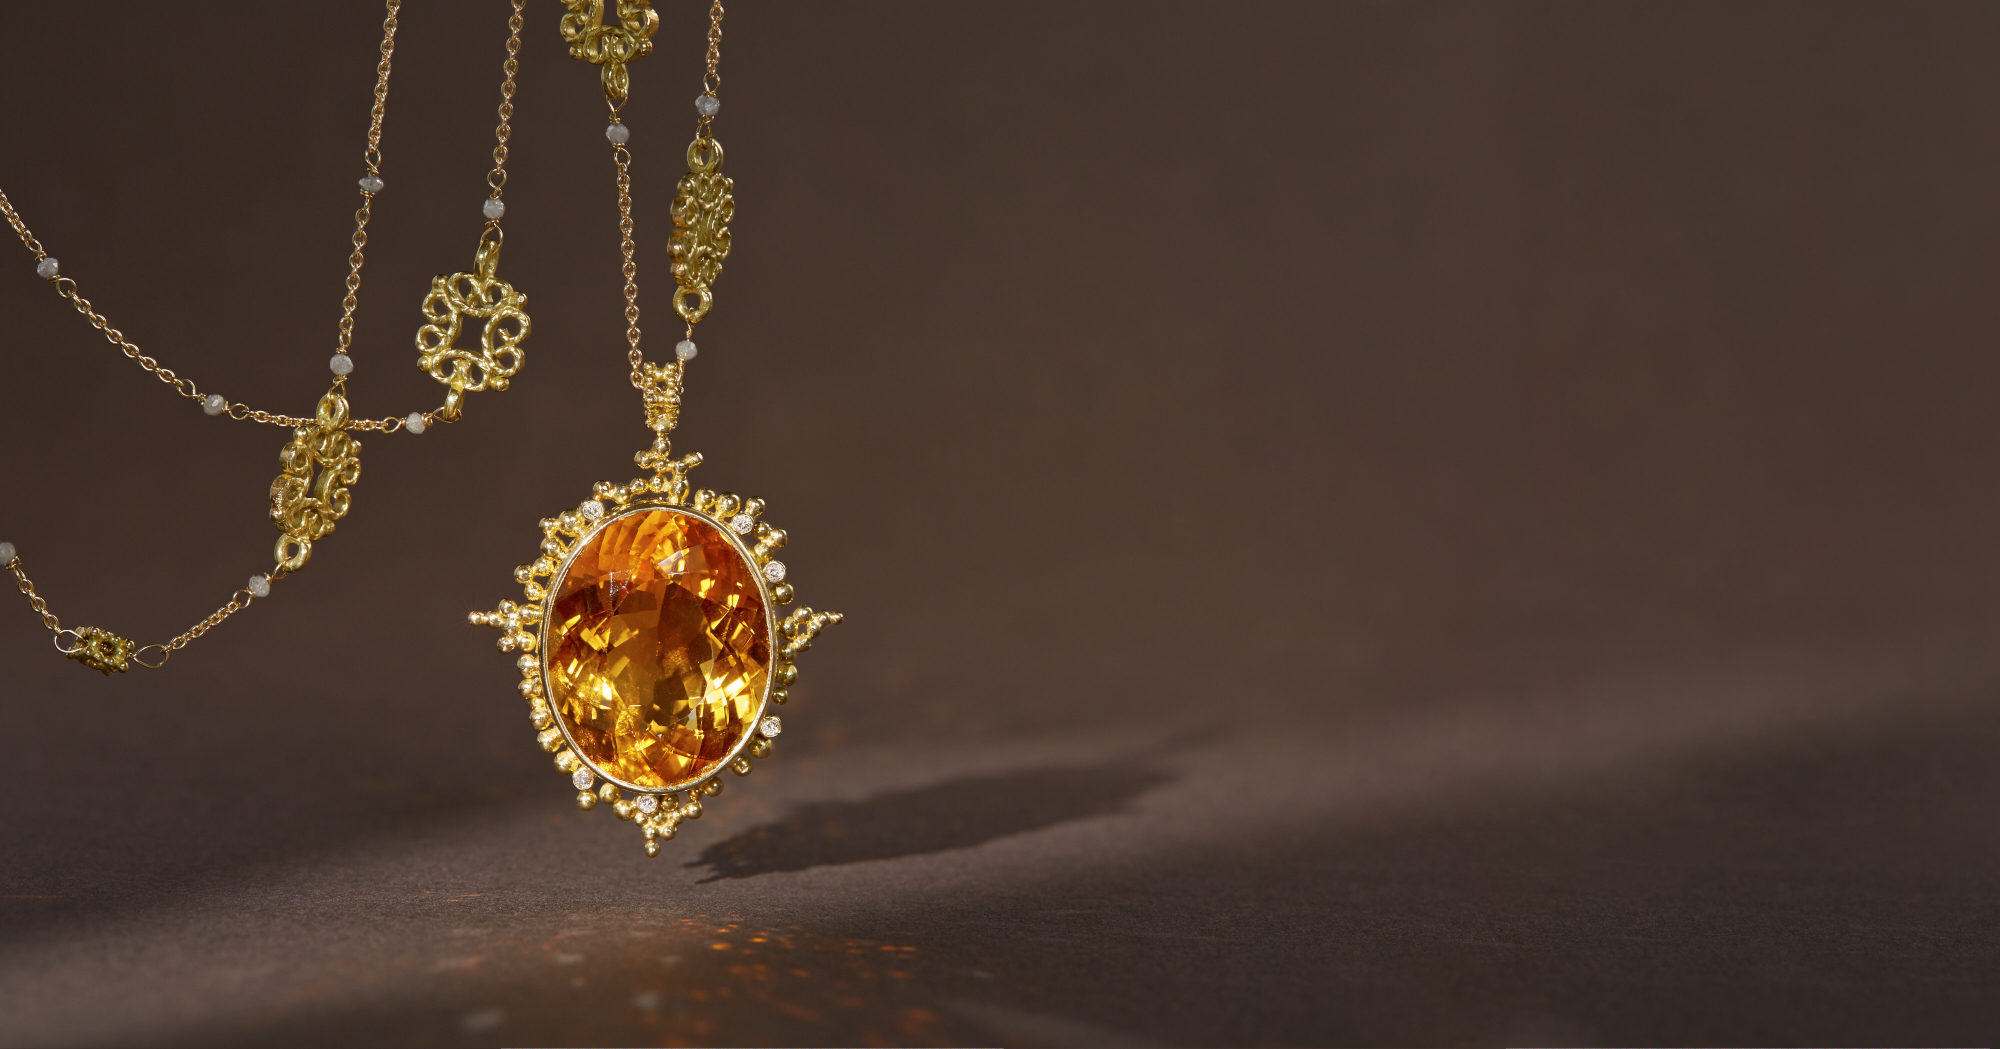 Discover the necklace for you